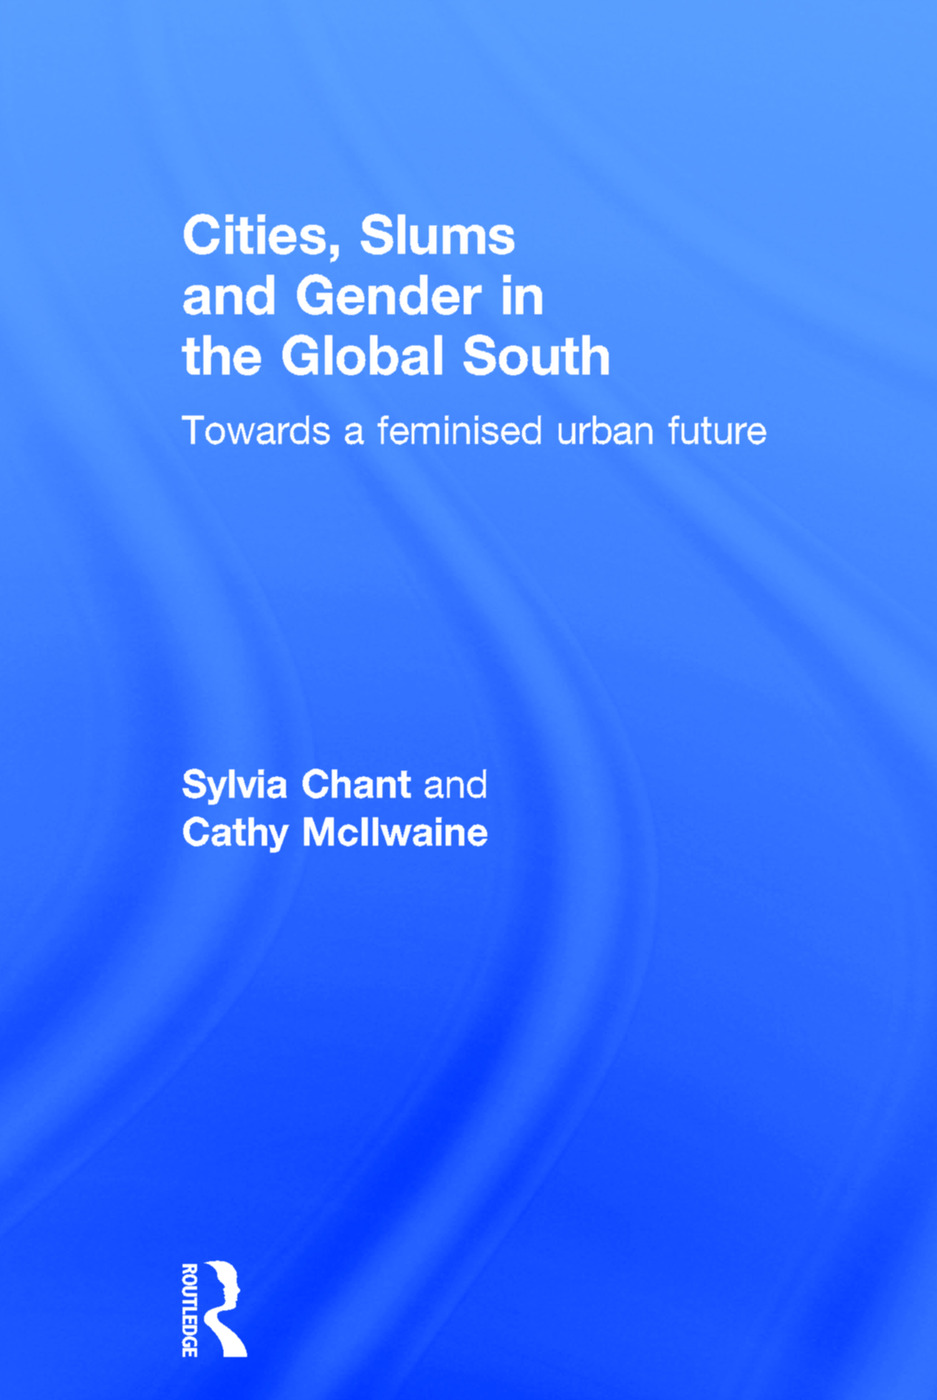 Cities, Slums and Gender in the Global South: Towards a feminised urban future book cover